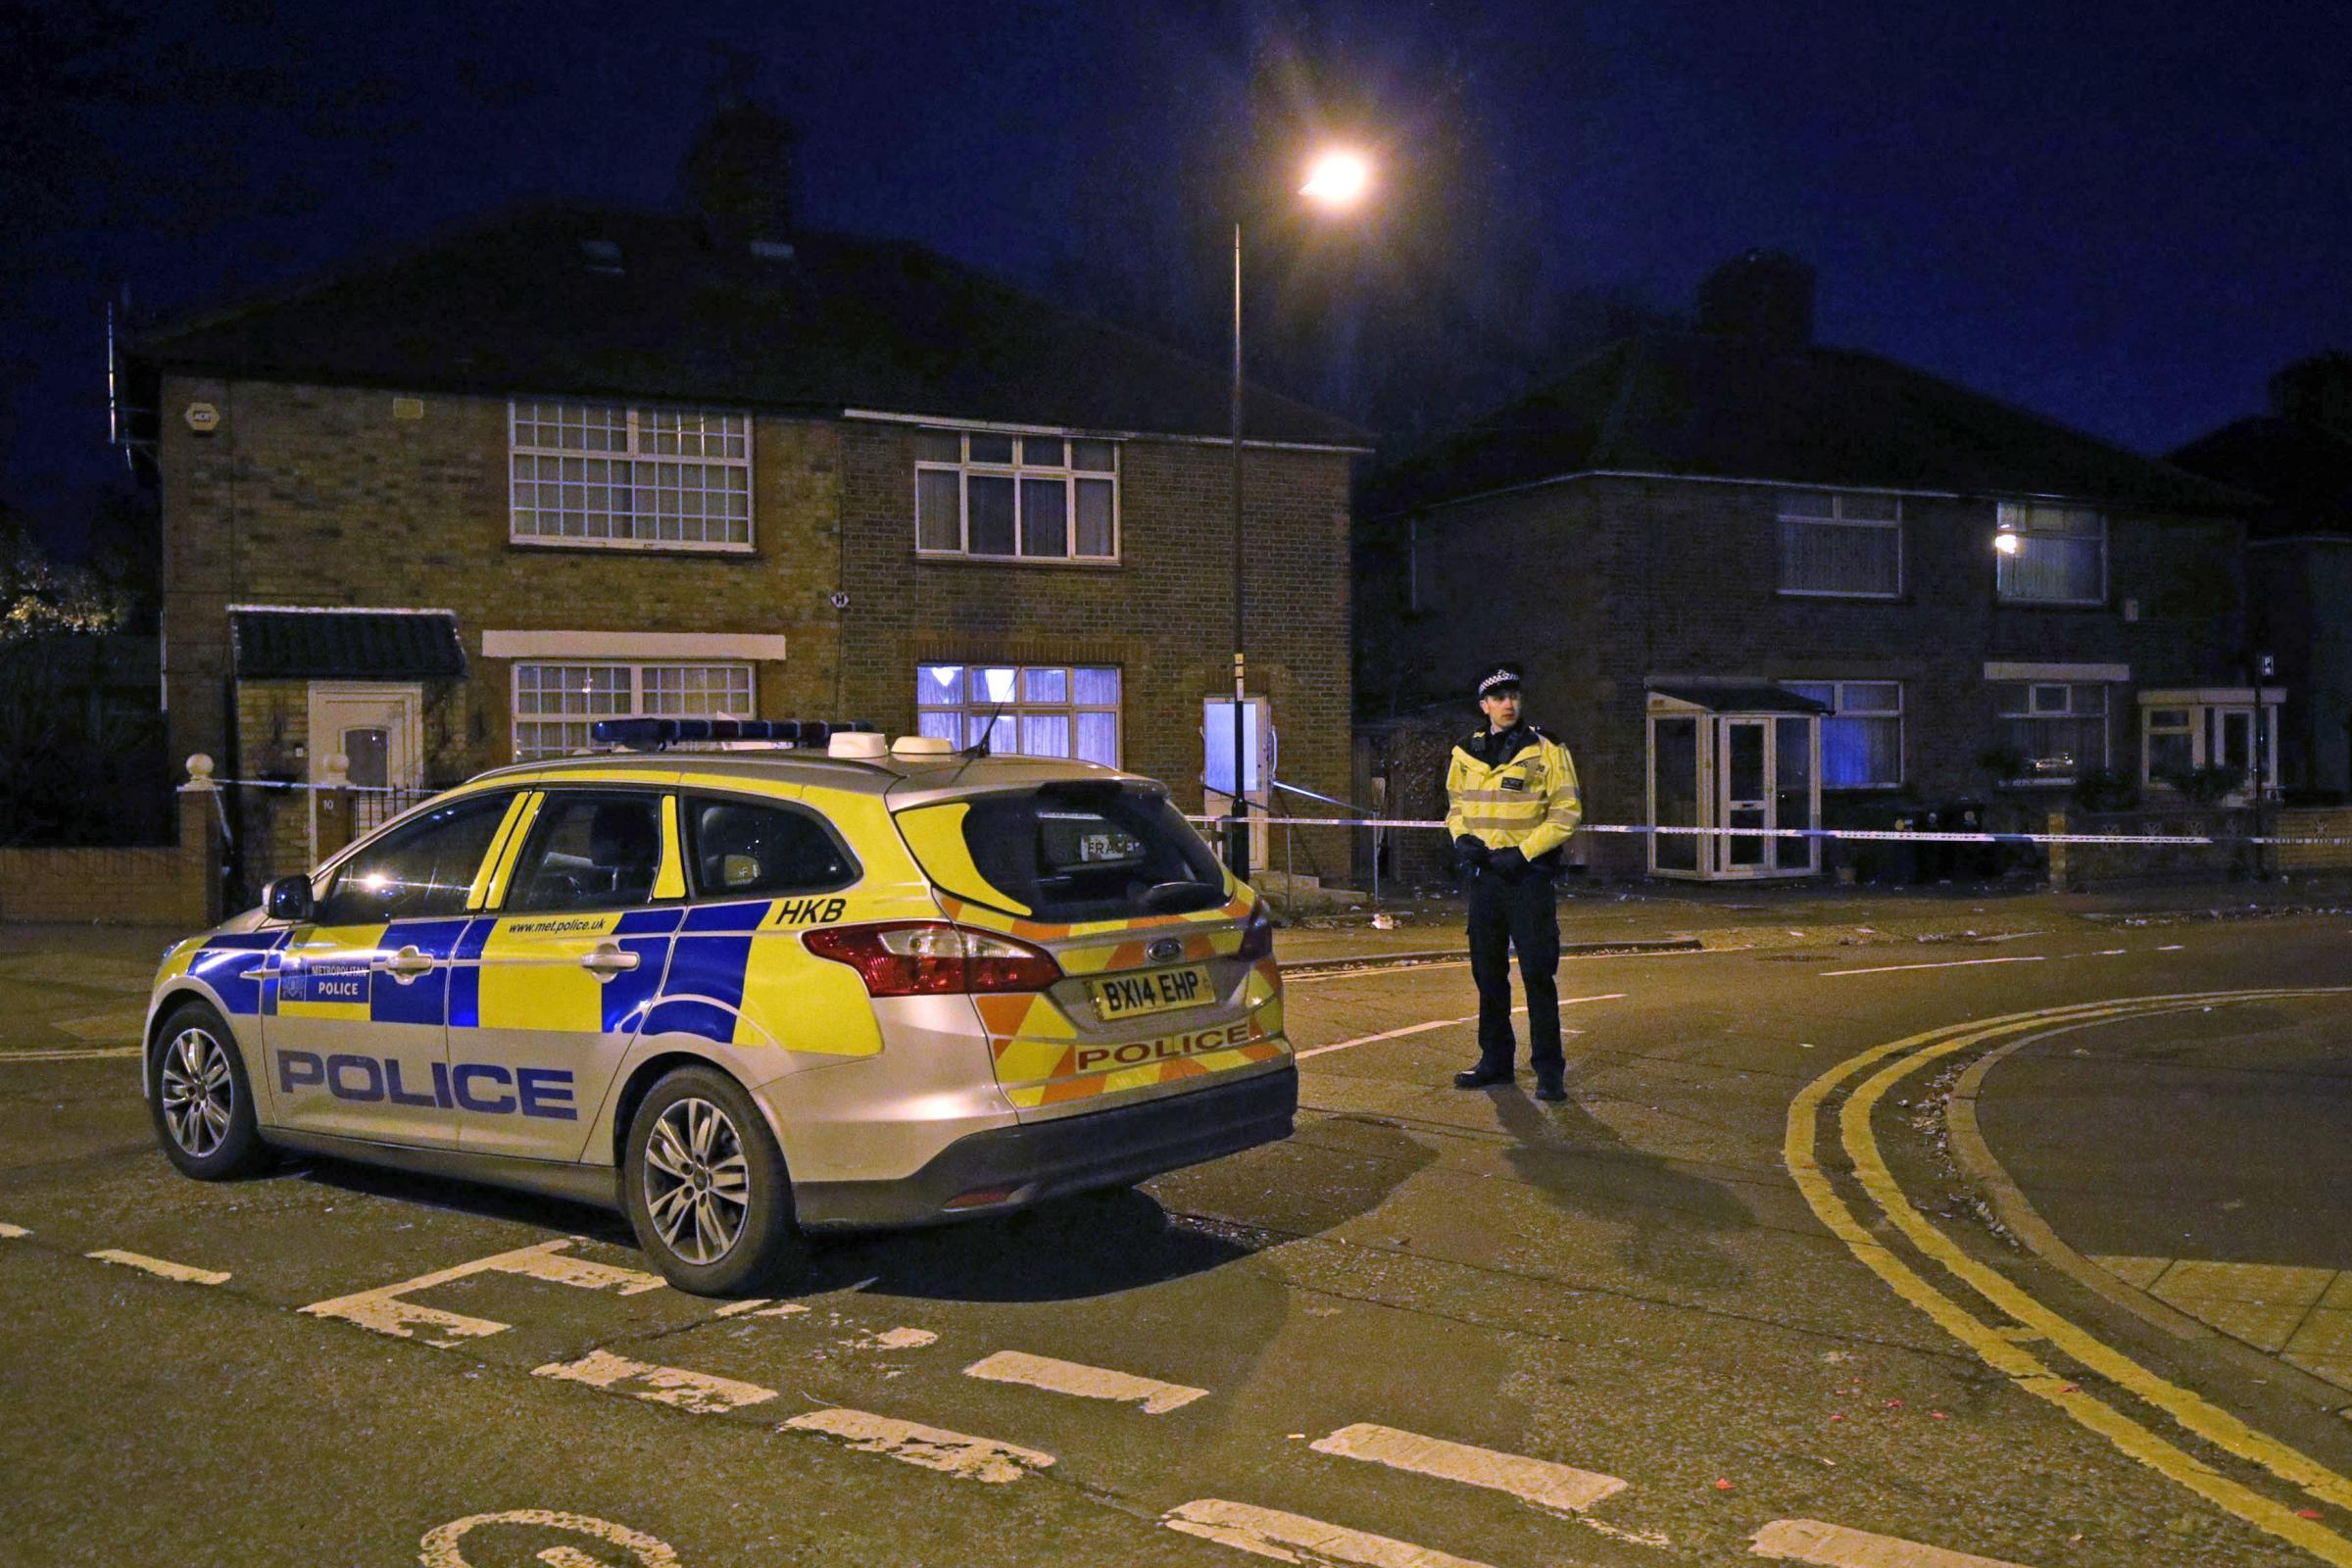 Police to carry out stop and searches in wake of linked attacks